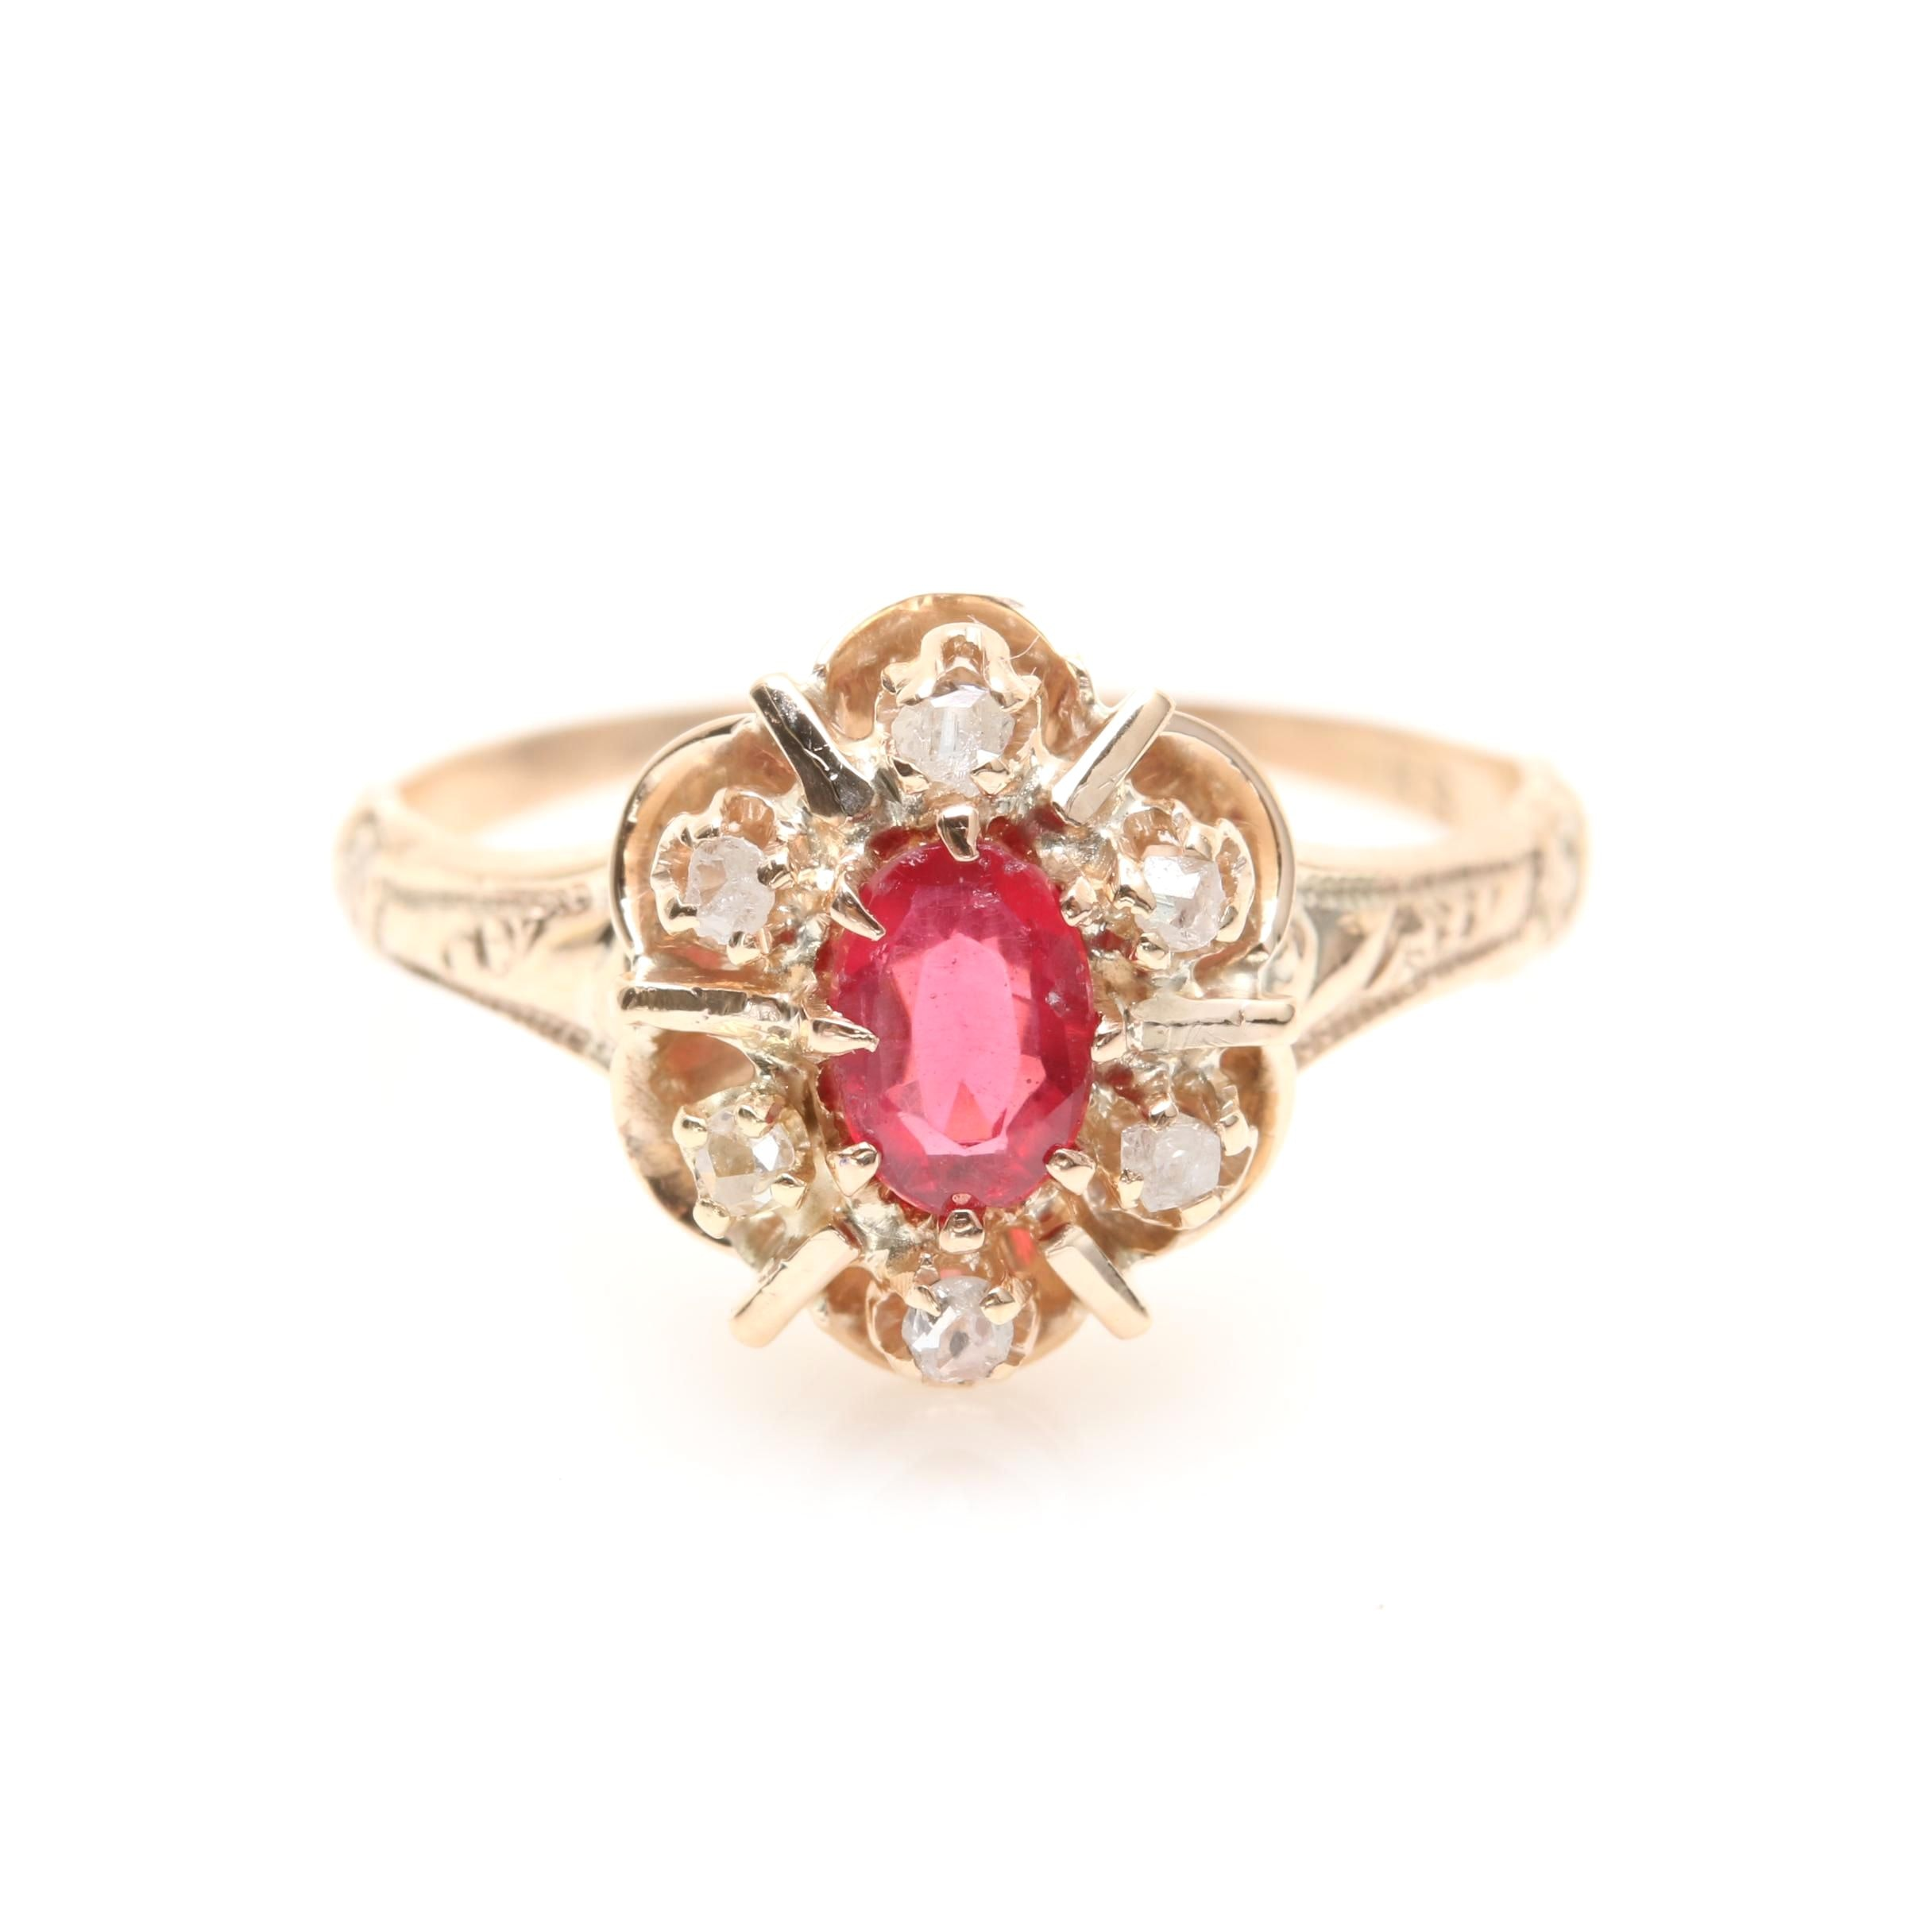 Victorian 10K Yellow Gold Glass and Garnet Doublet and Diamond Ring